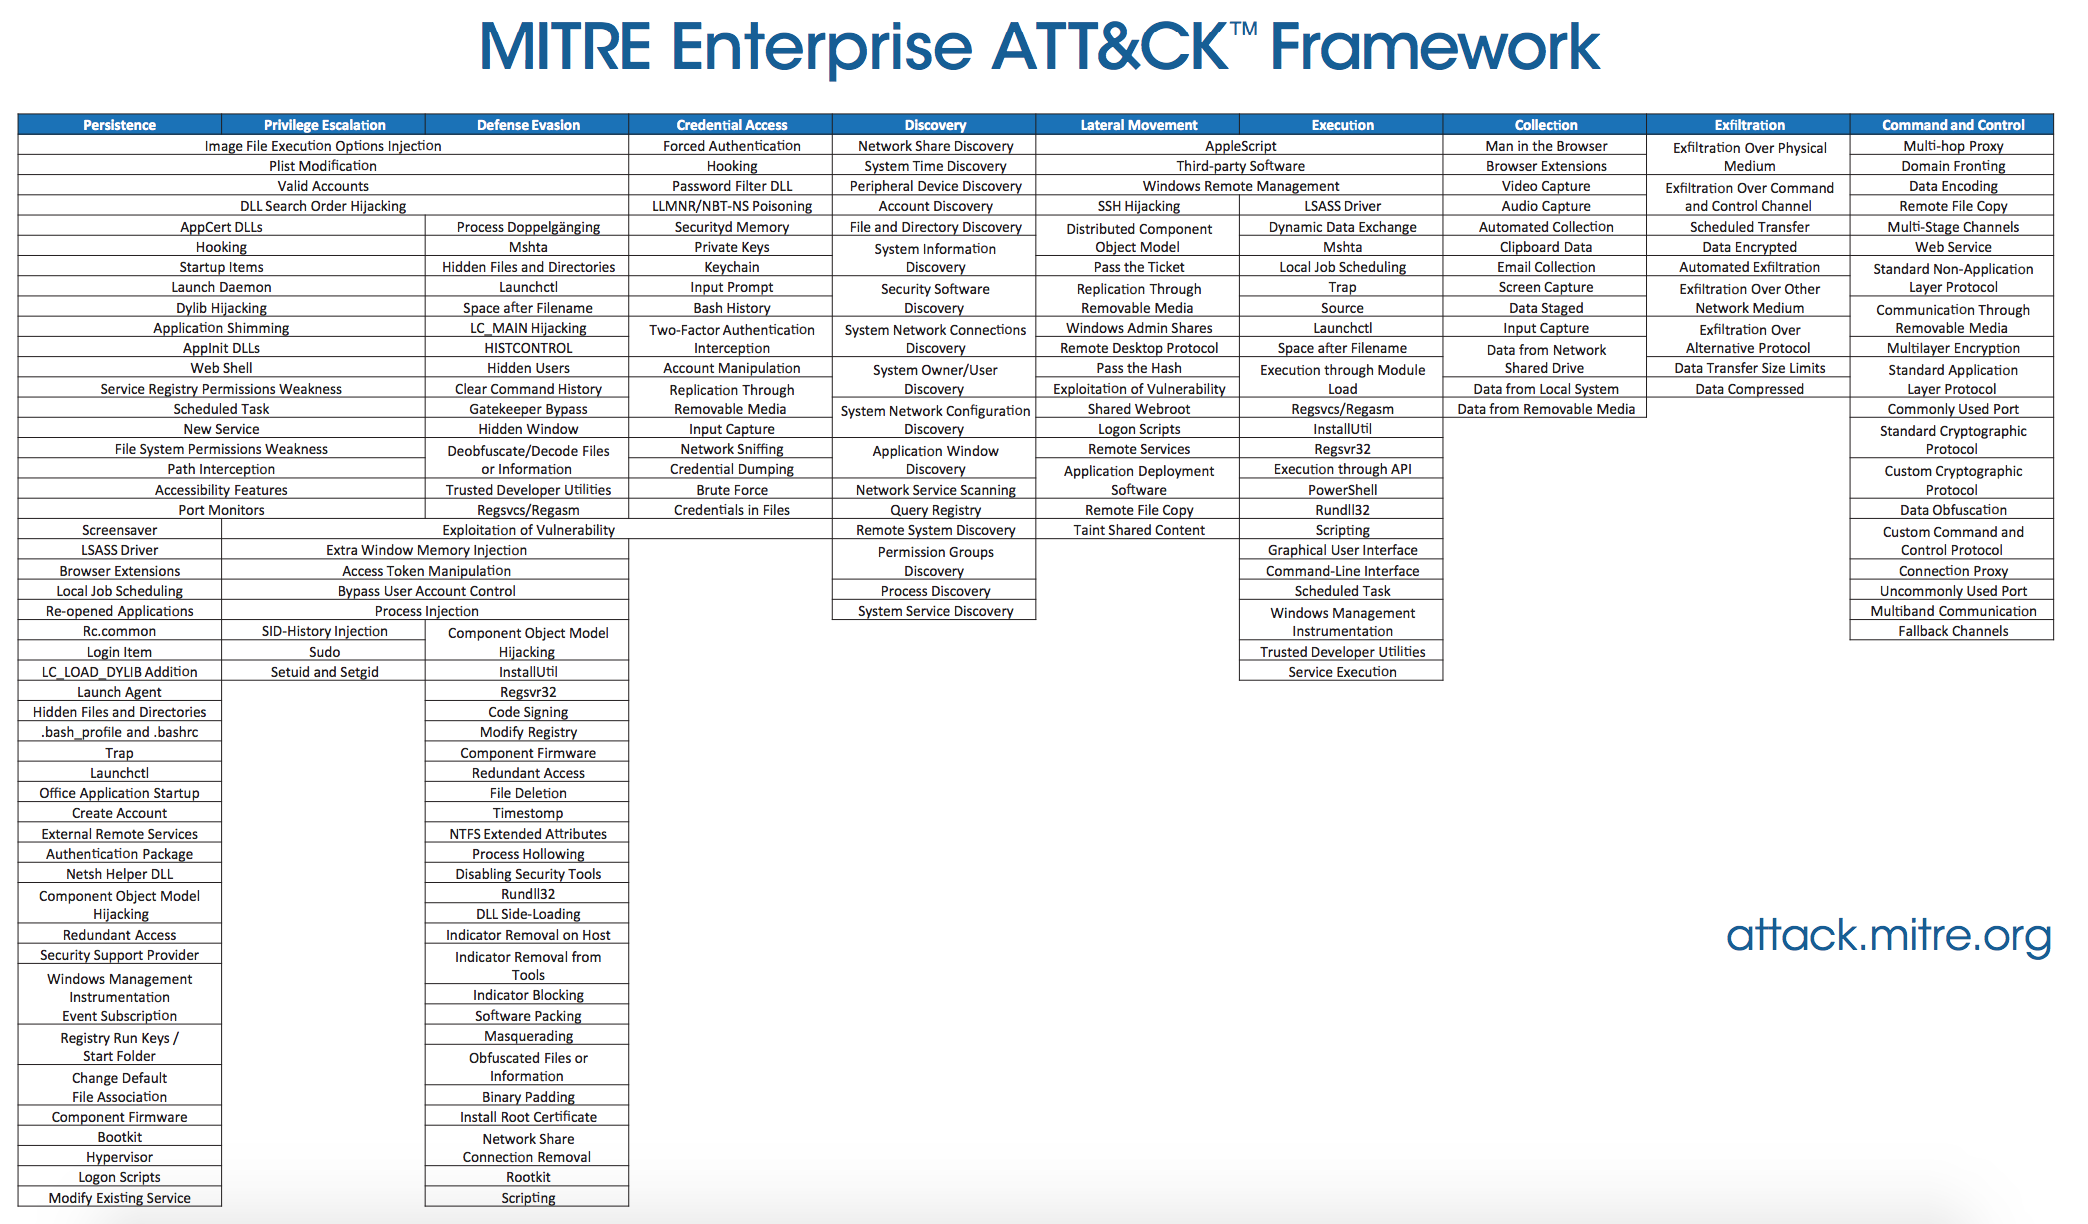 Forensic detection of MITRE ATT&CK Techniques - Forensic